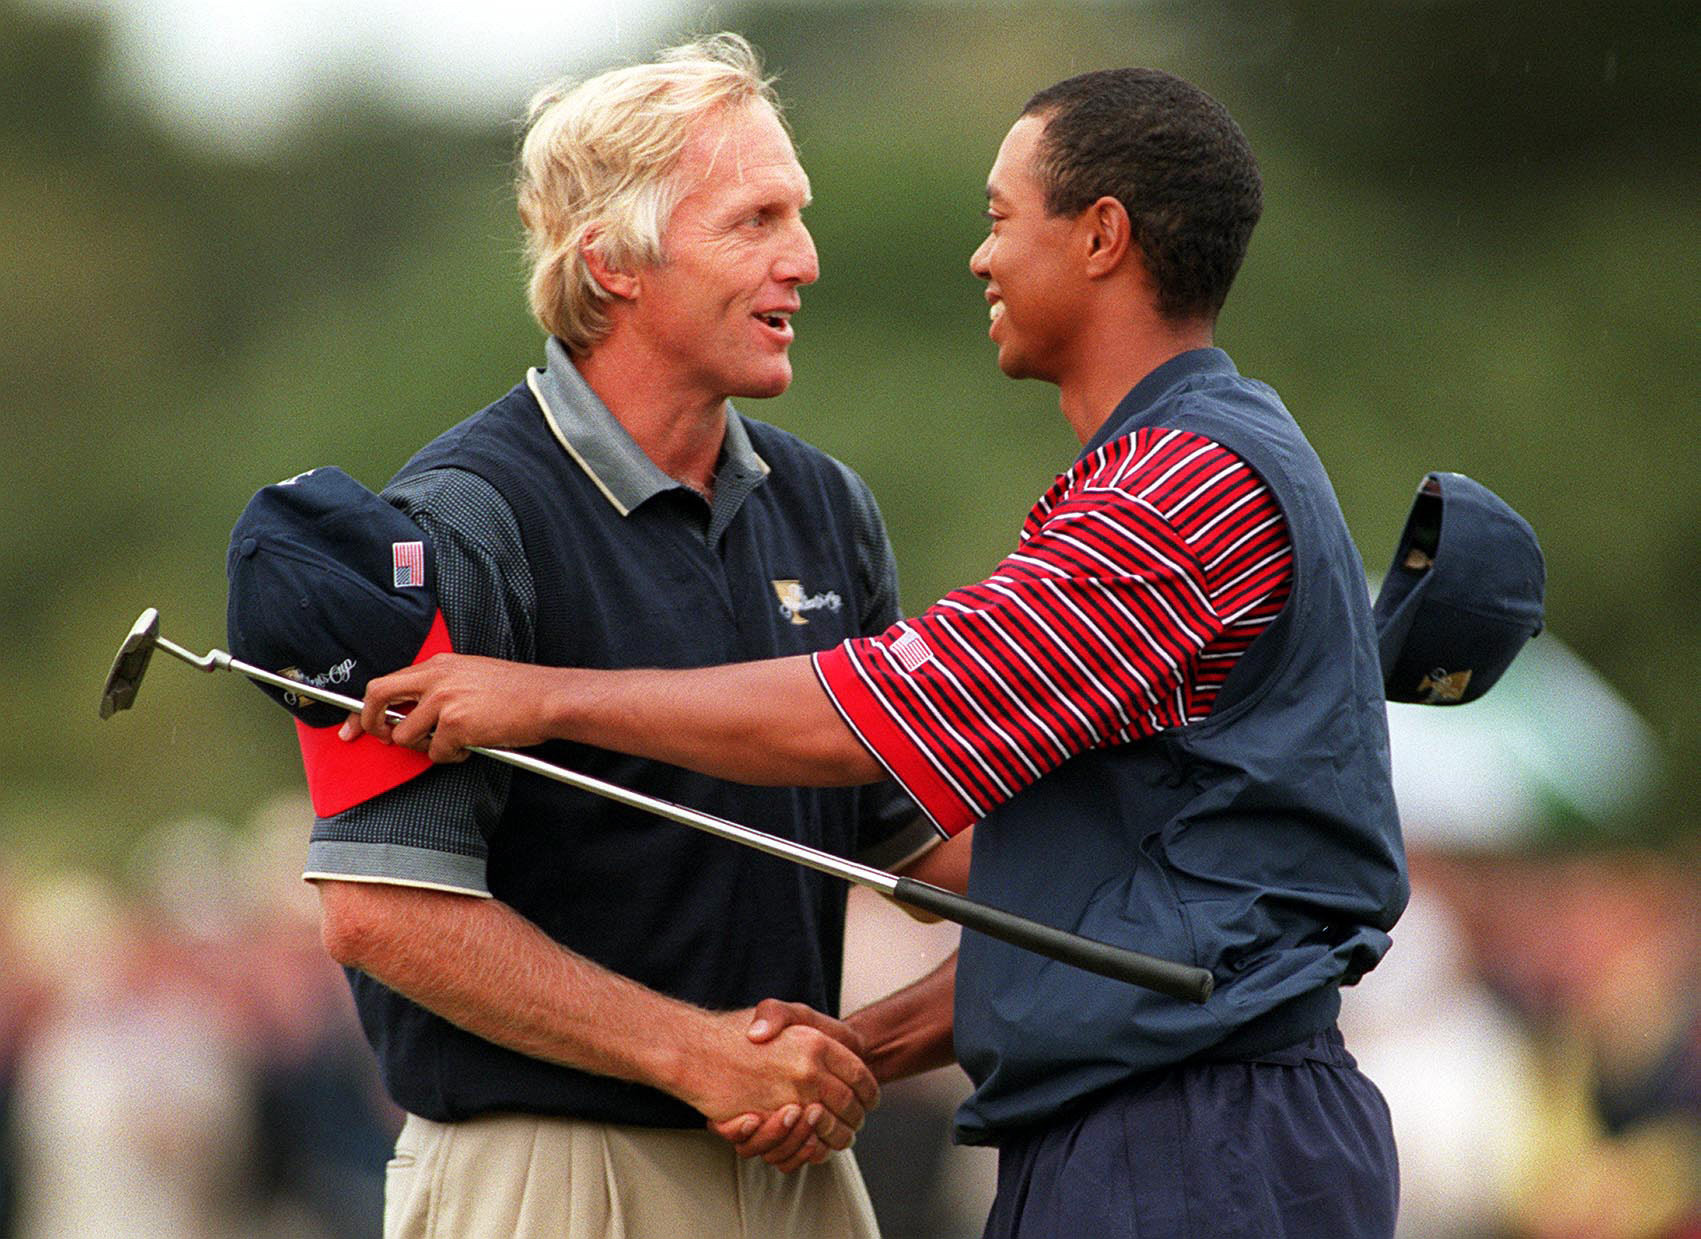 greg norman doubts tiger woods will return to top form